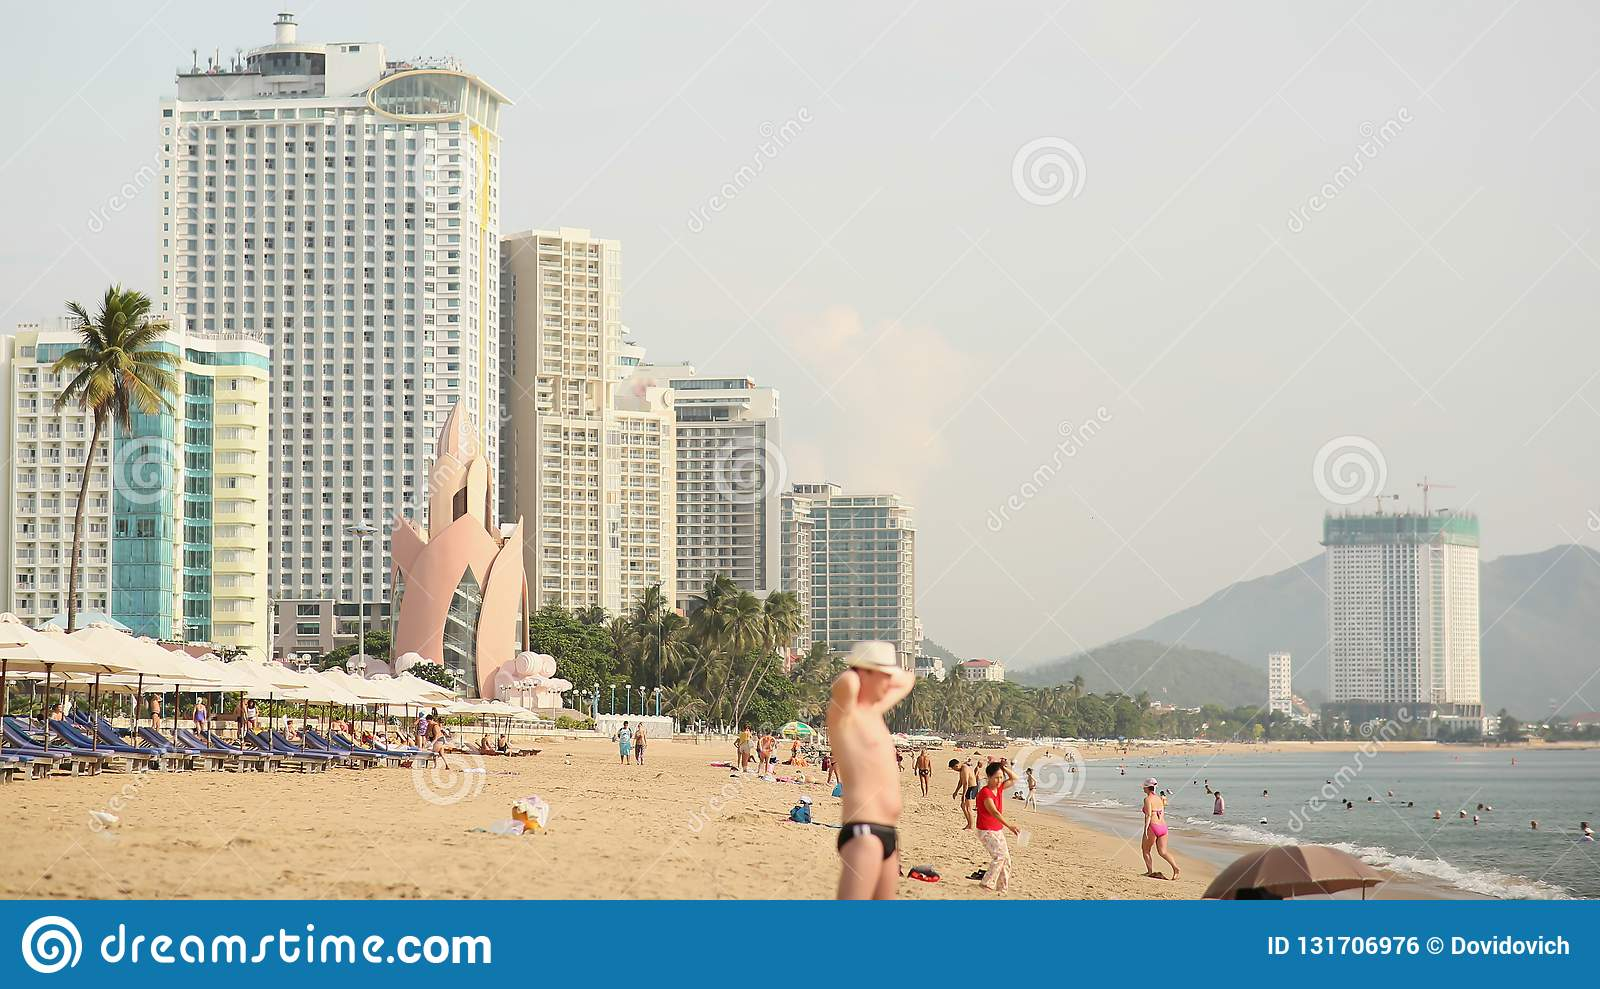 NNHA TRANG, VIETNAM - OCTOBER 1, 2016: Nha Trang beach with many vacationing tourists. Vietnam. Timelapse.